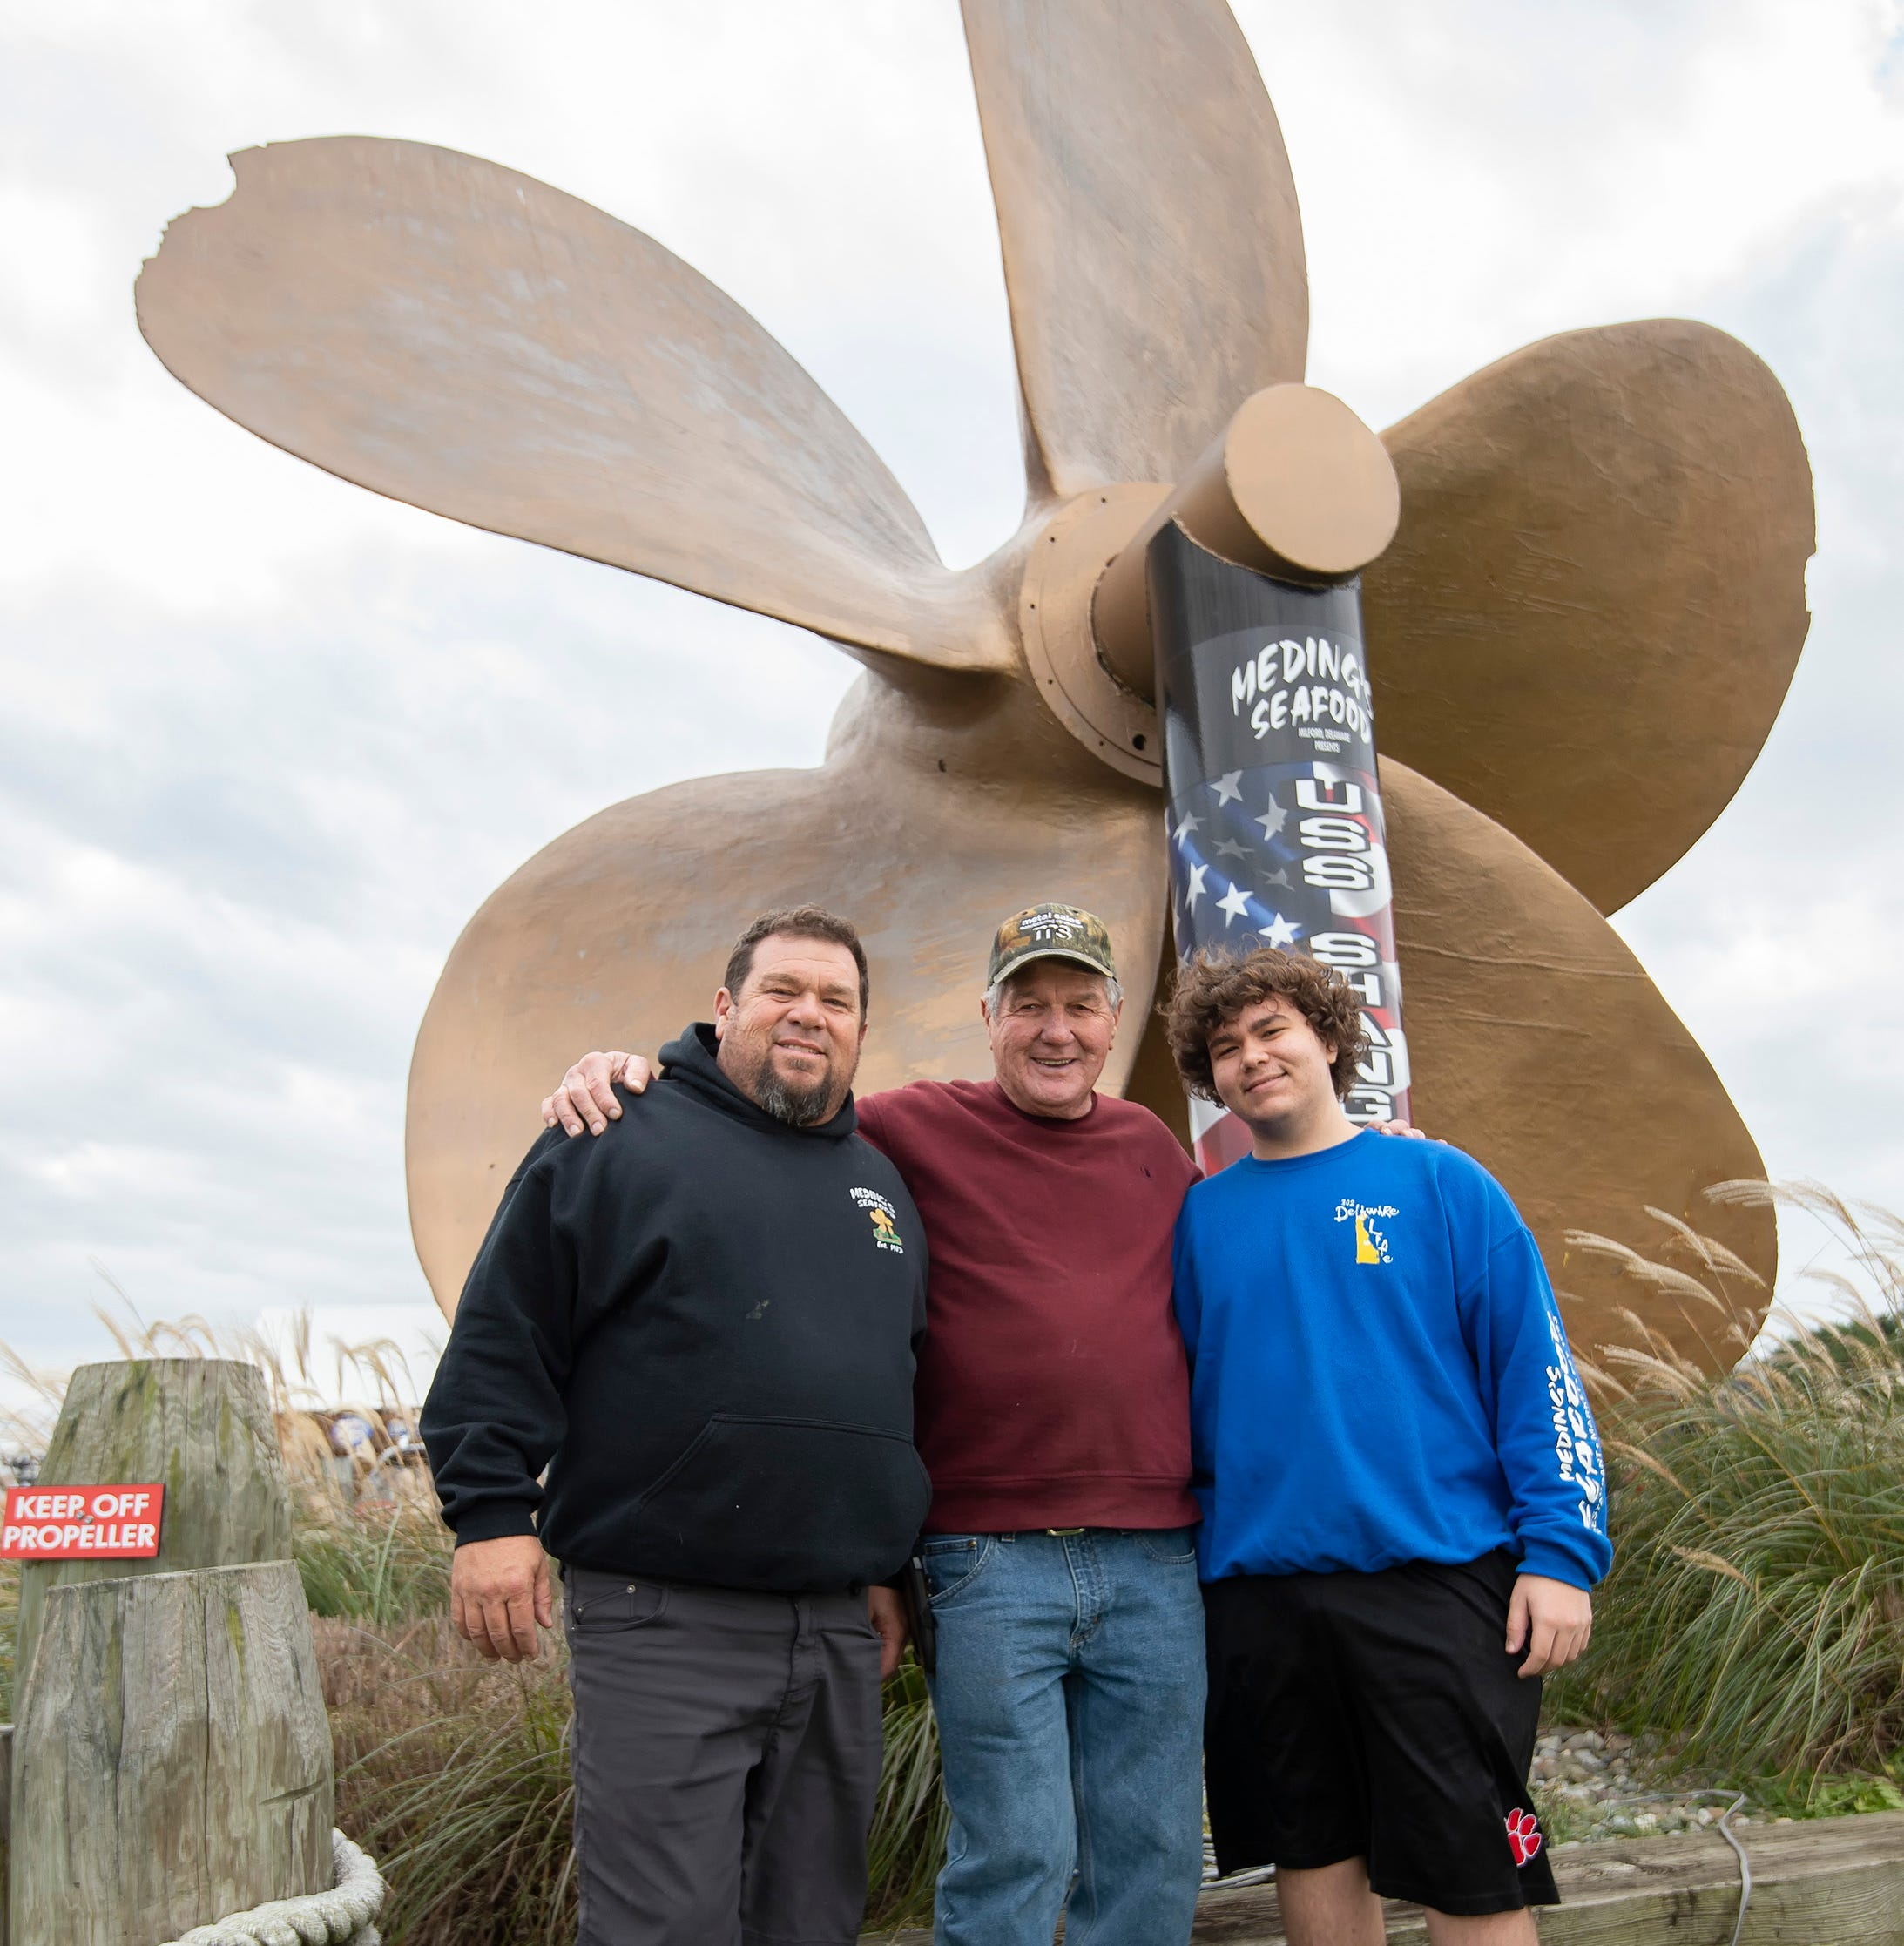 Milford restaurant's giant propeller has Apollo 13 connection